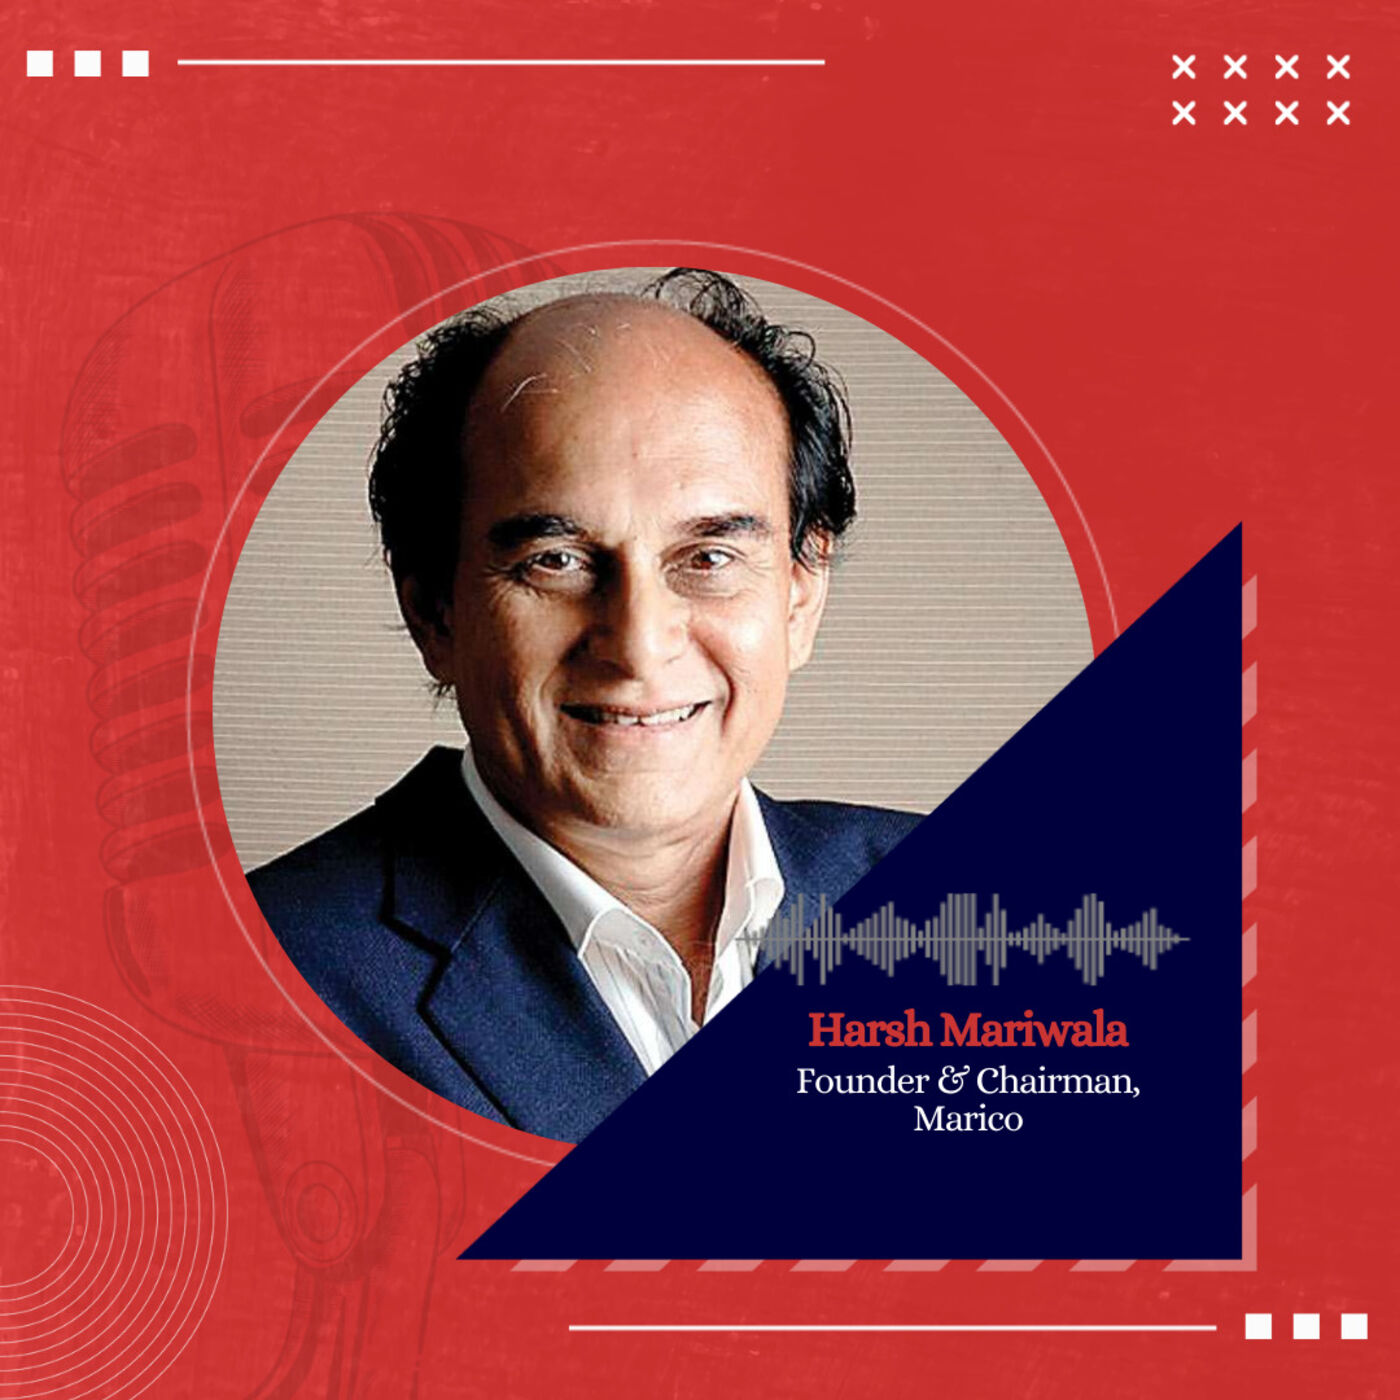 Marico Founder, Harsh Mariwala on Brand building, Growth and Culture